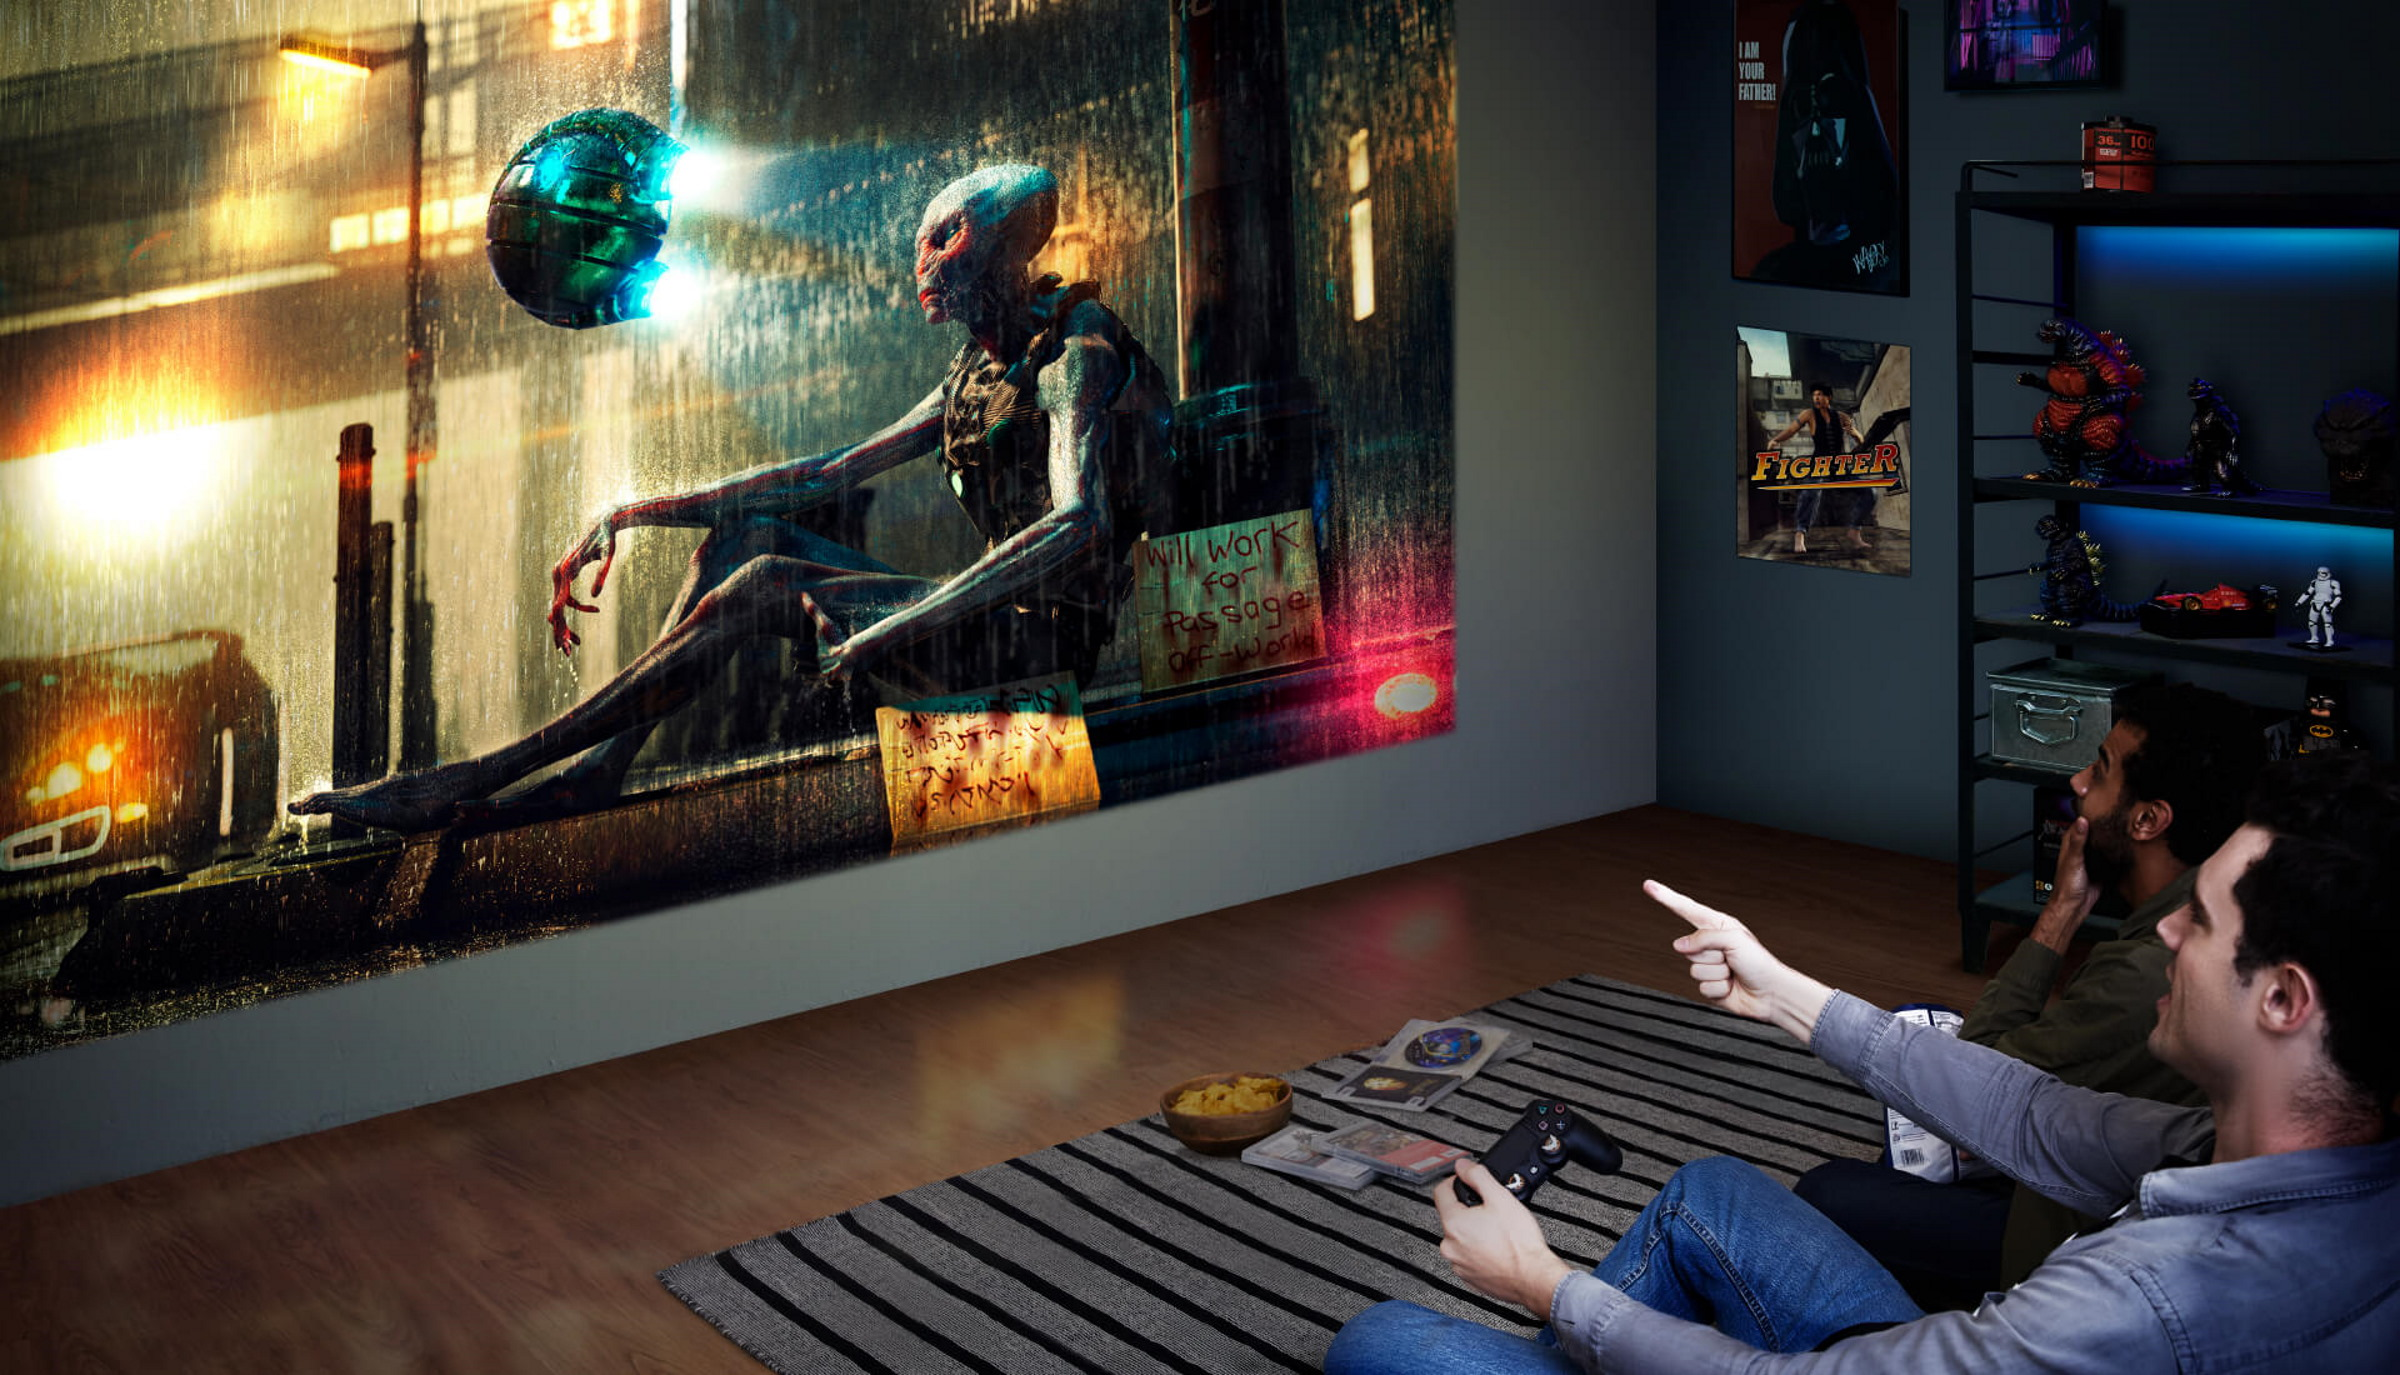 A New Study Claims Video Game Stories Are Now Better Than Film. Do You Agree?